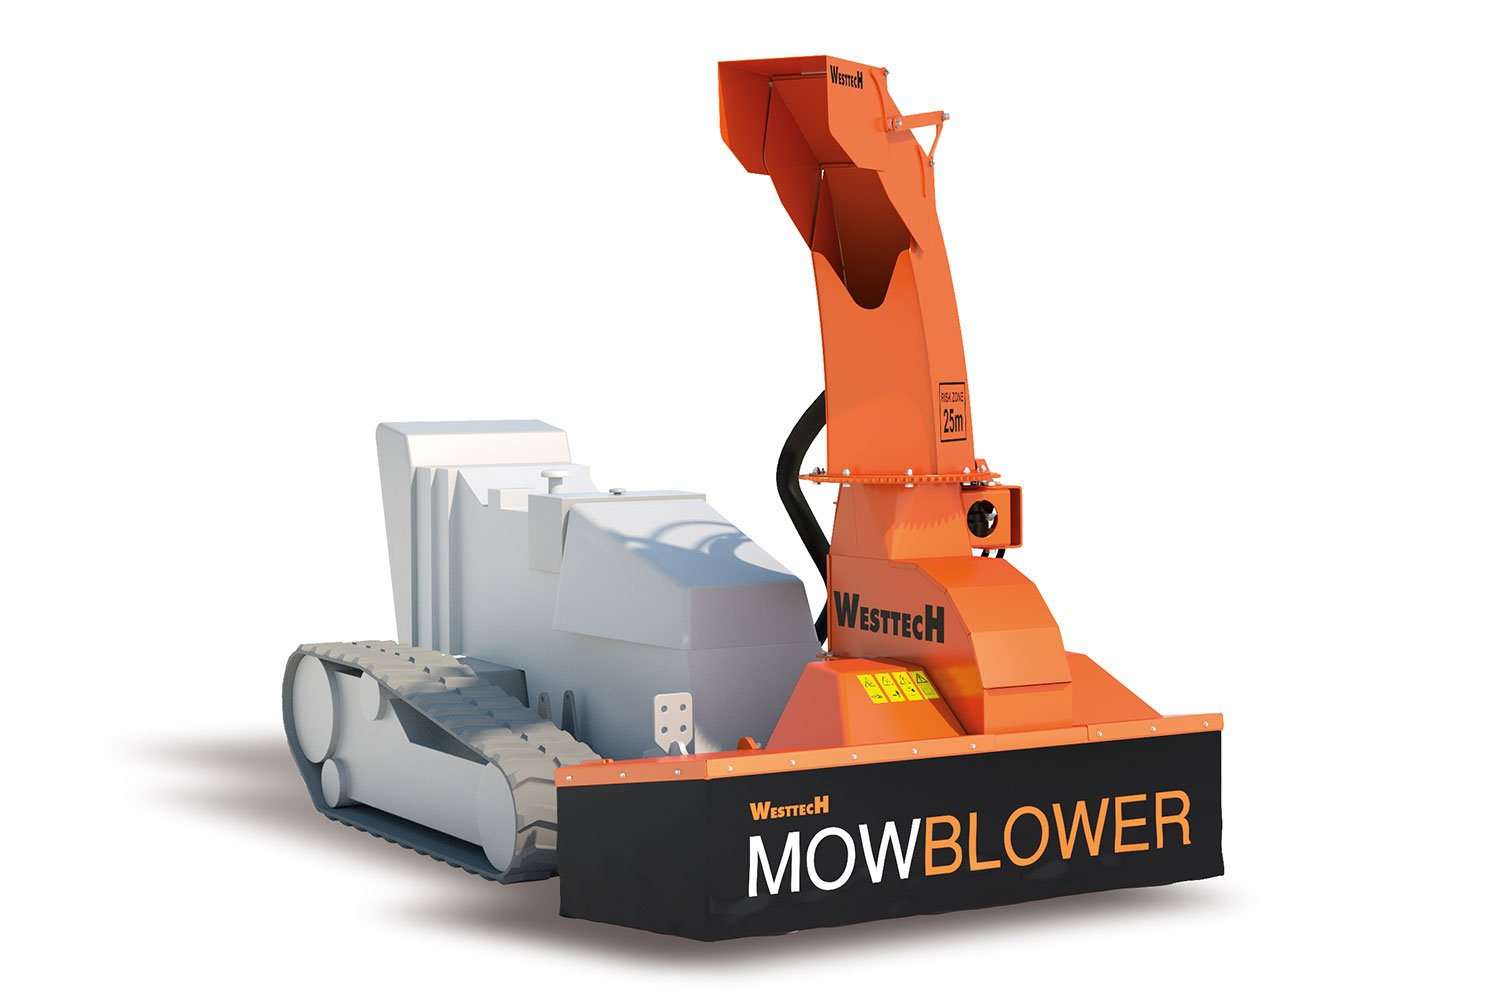 MOWBLOWER